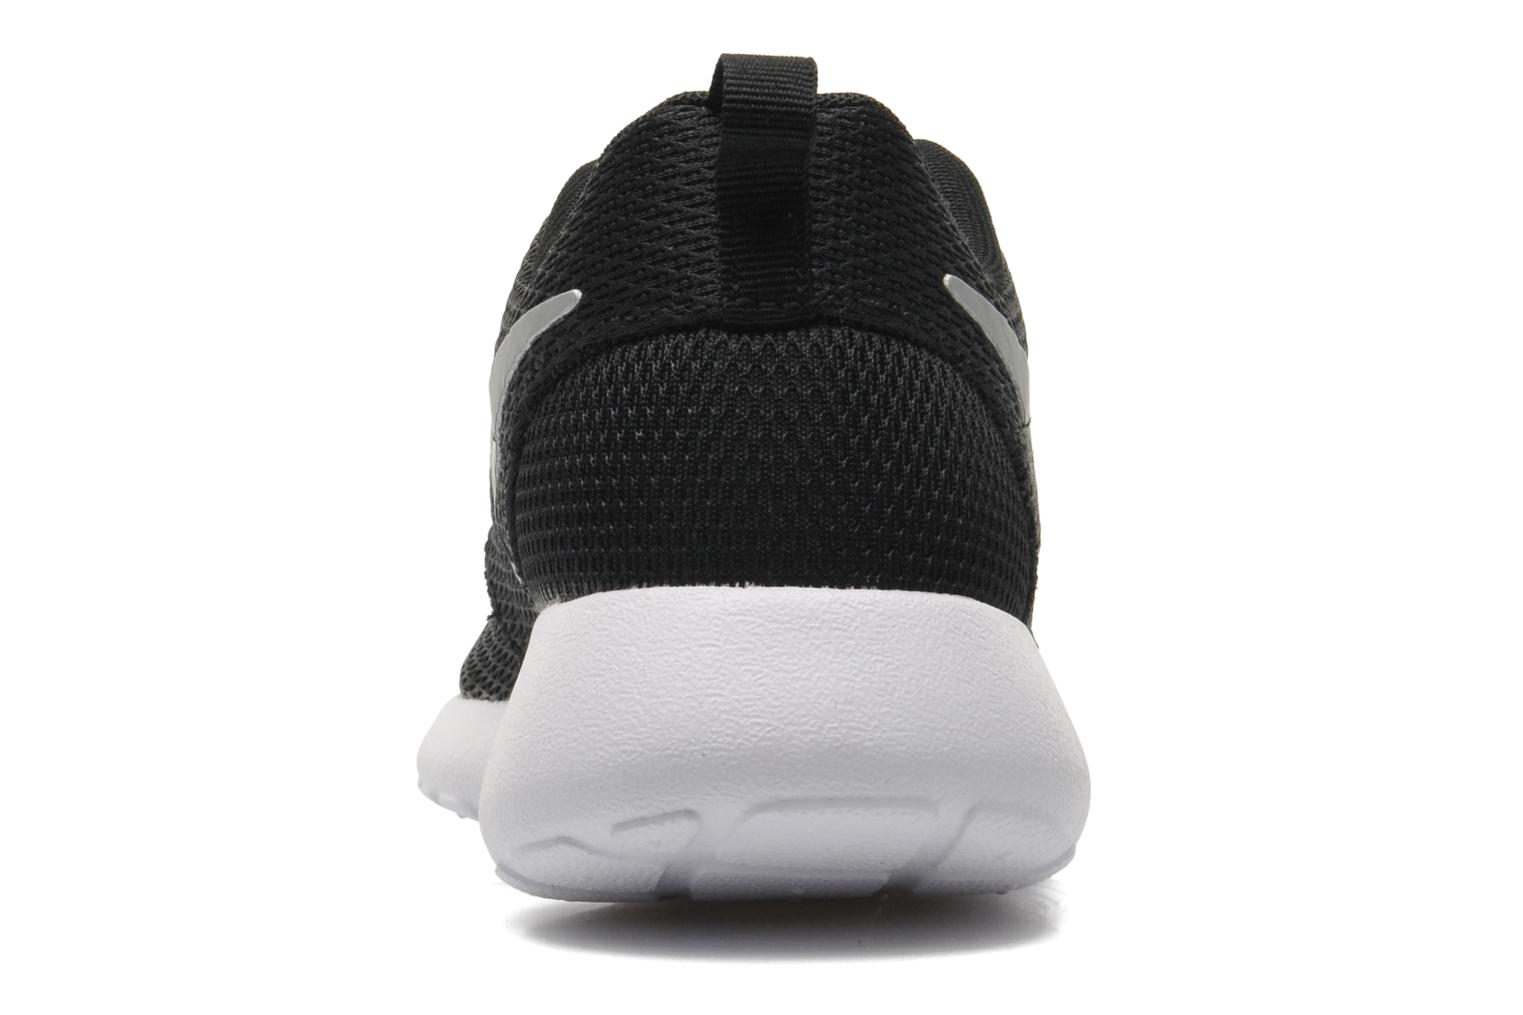 Wmns Nike Roshe One Black/Mtlc Platinum-White